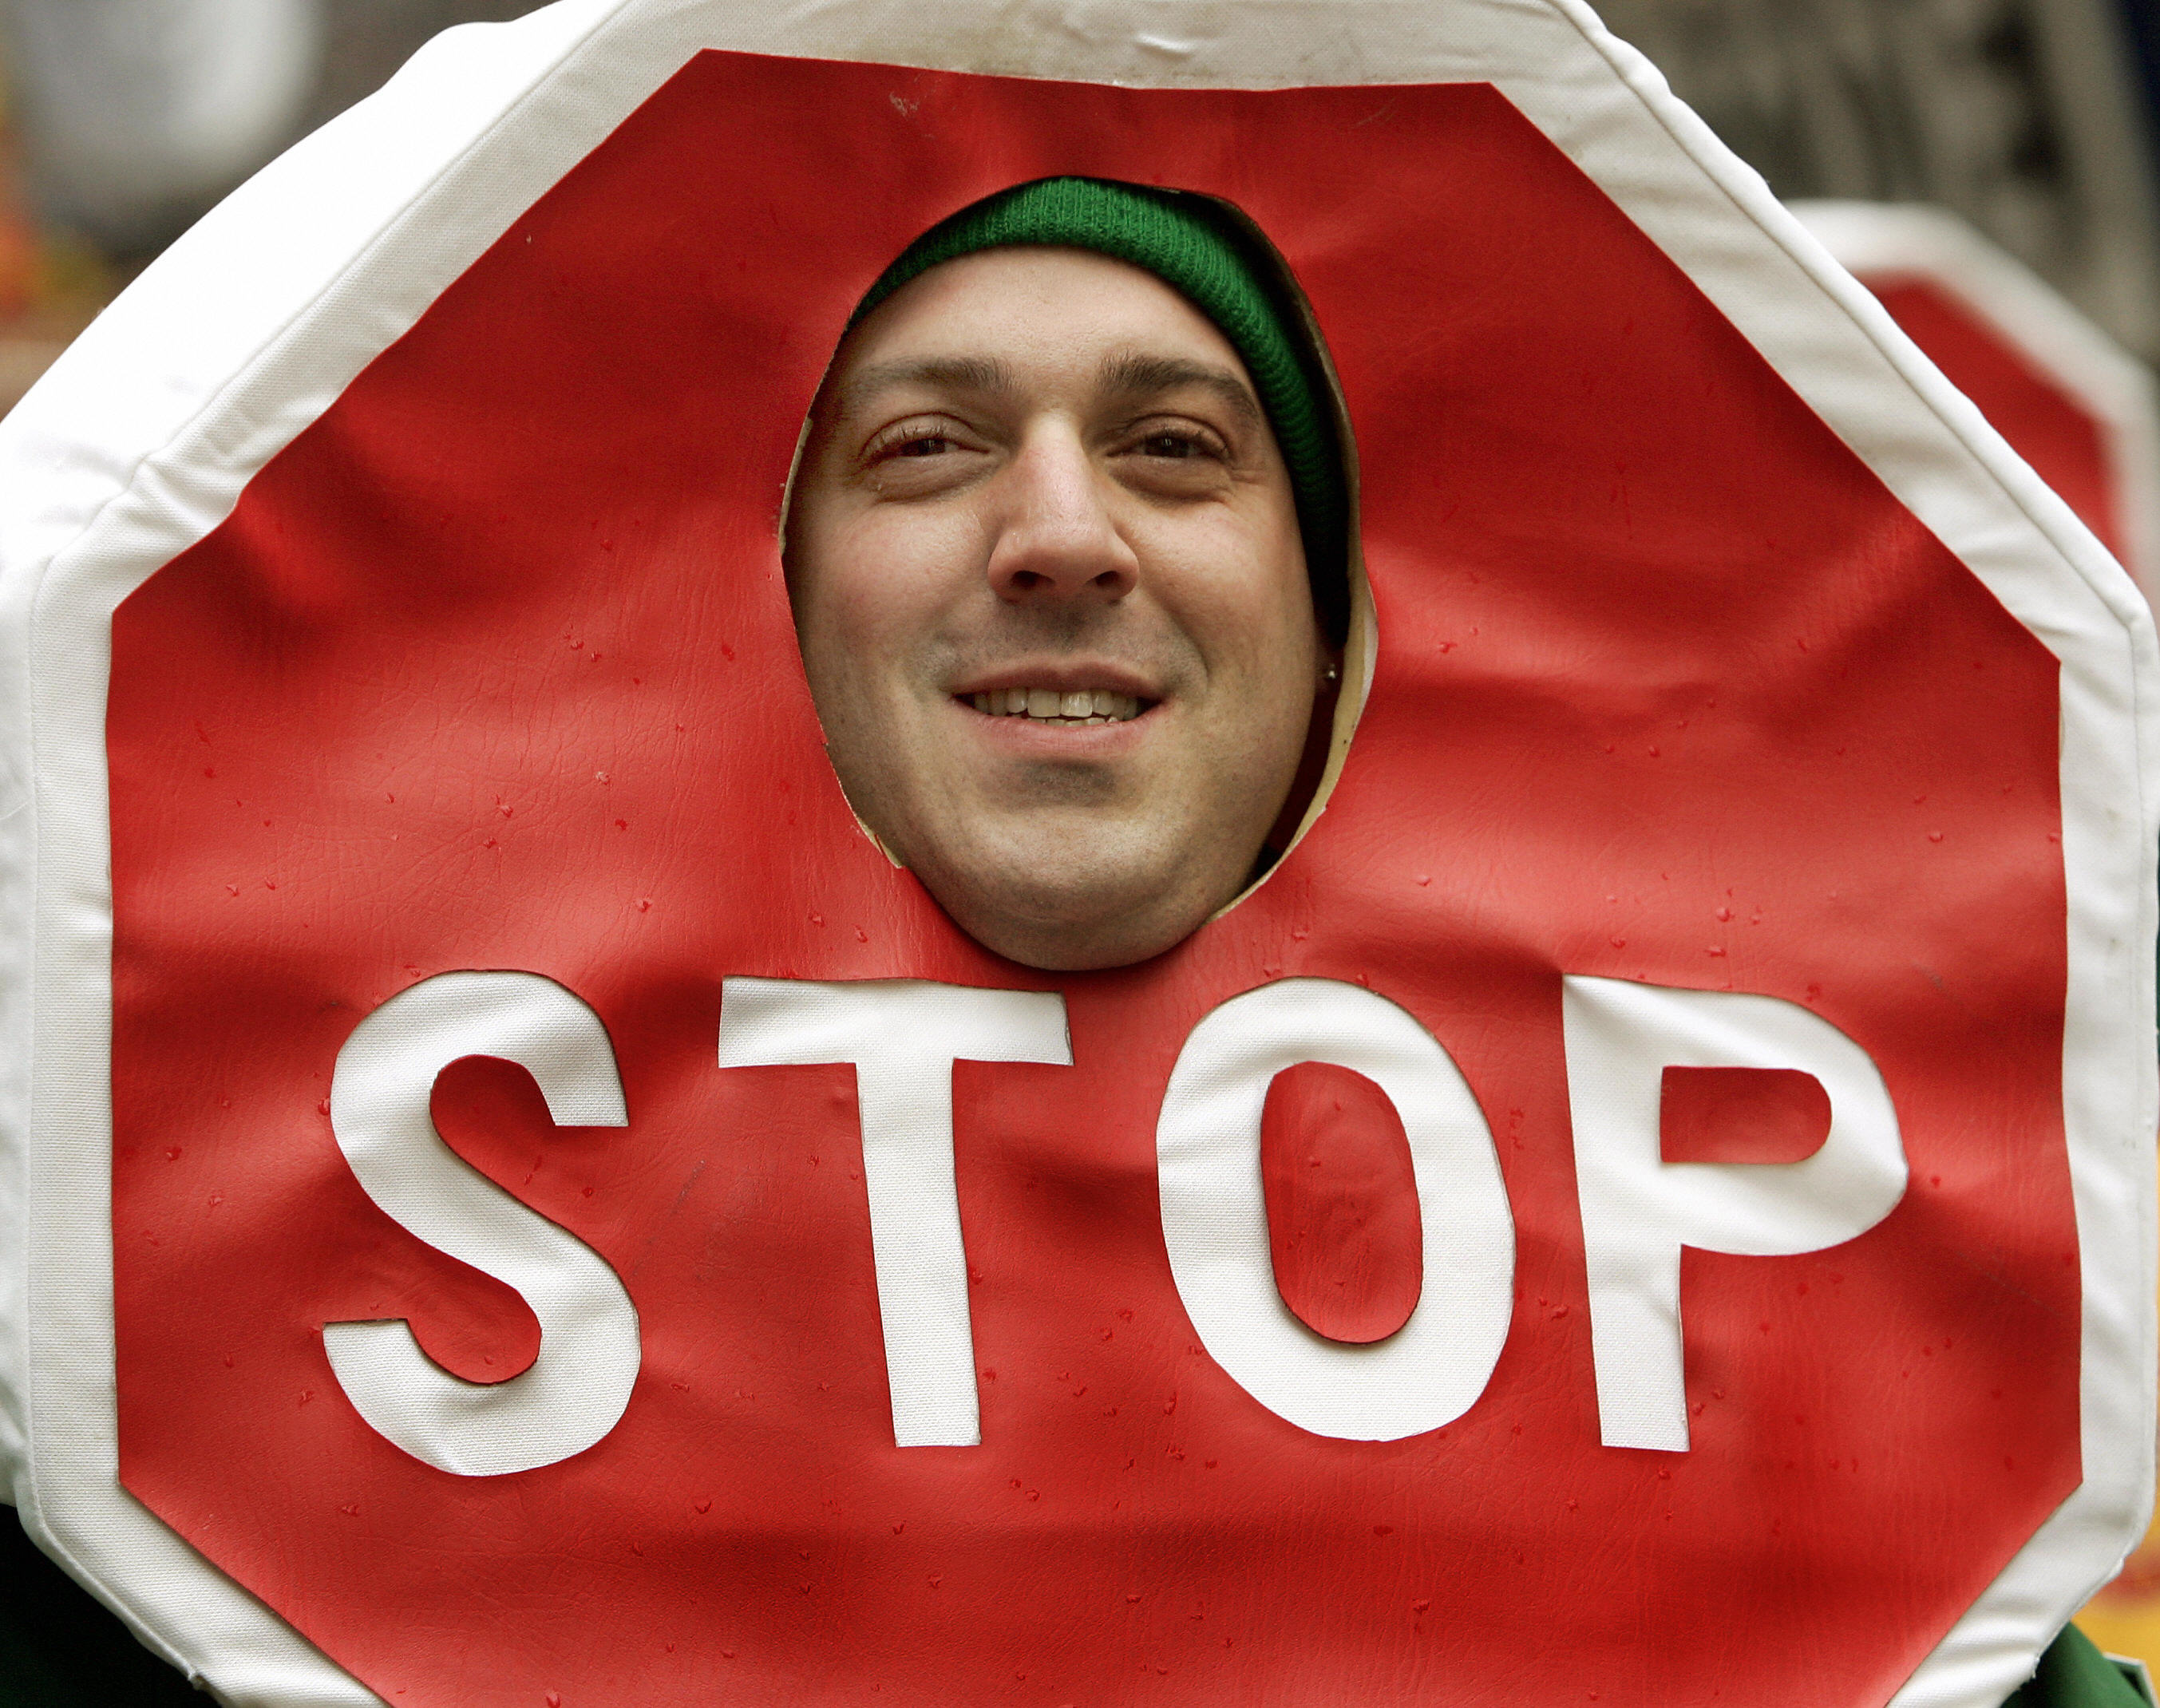 A parade marcher wearing a Stop Sign cos